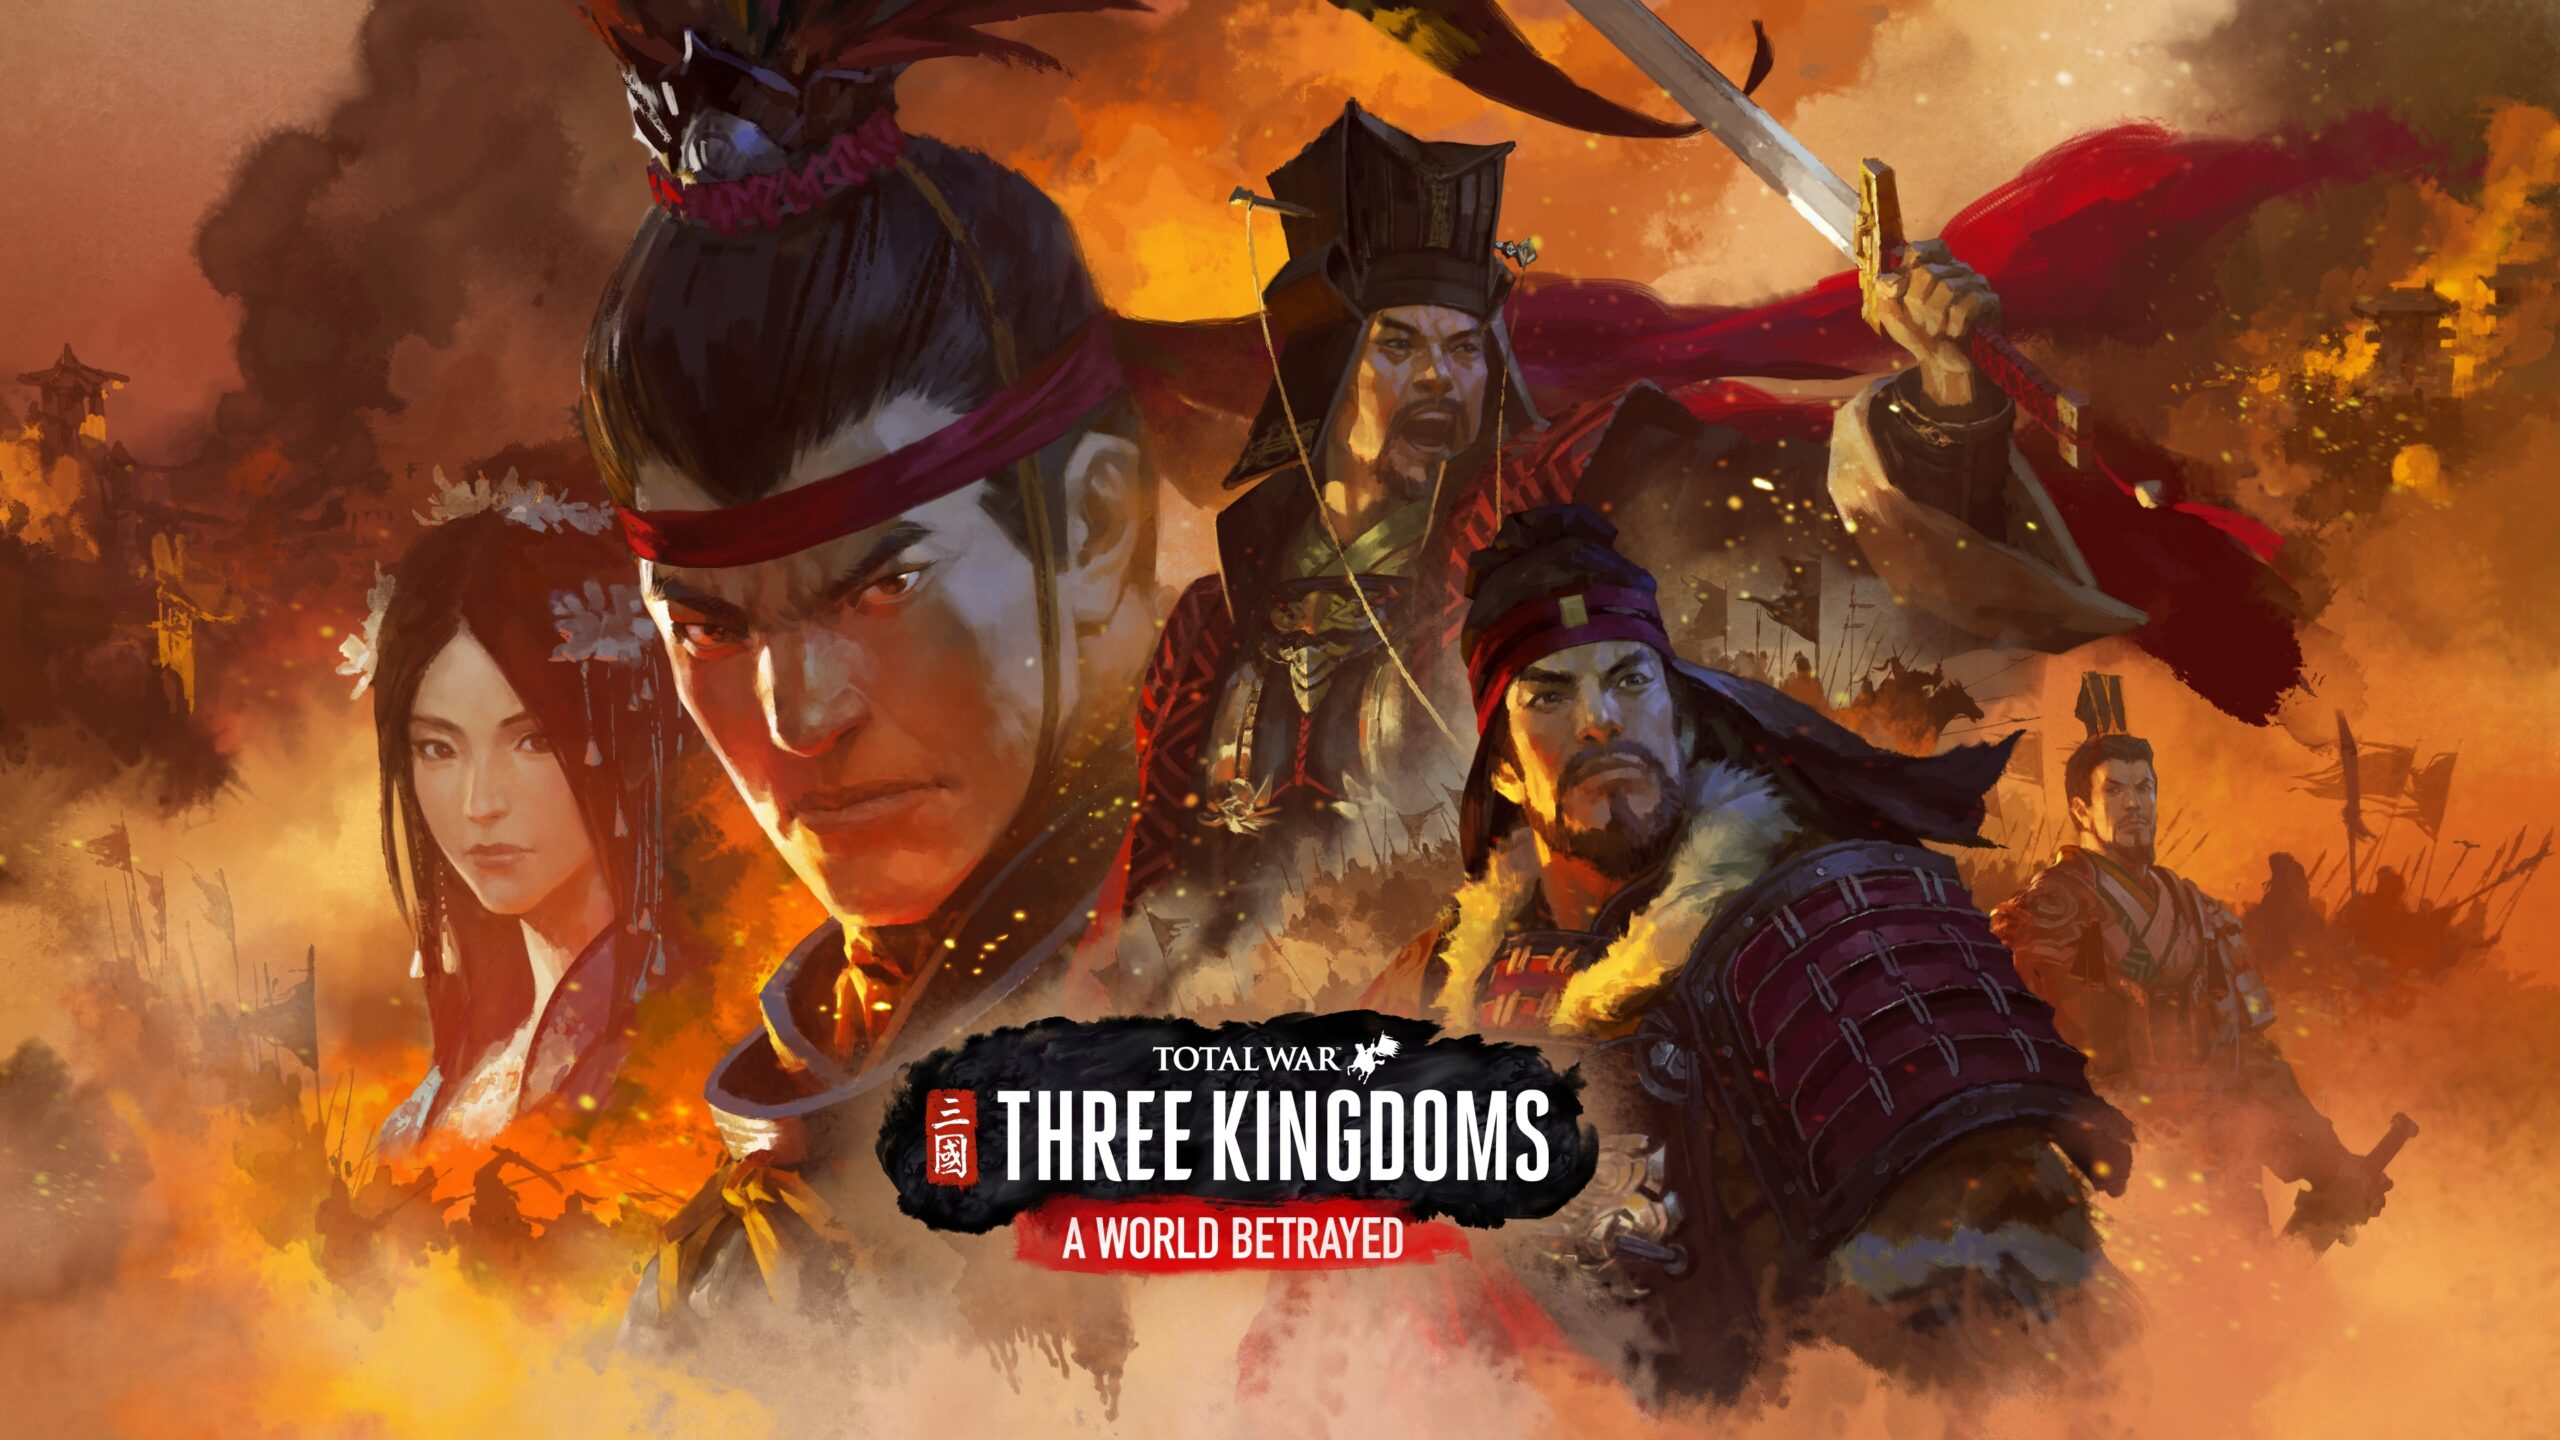 Forge your Path in A World Betrayed - The New Total War: Three Kingdoms DLC